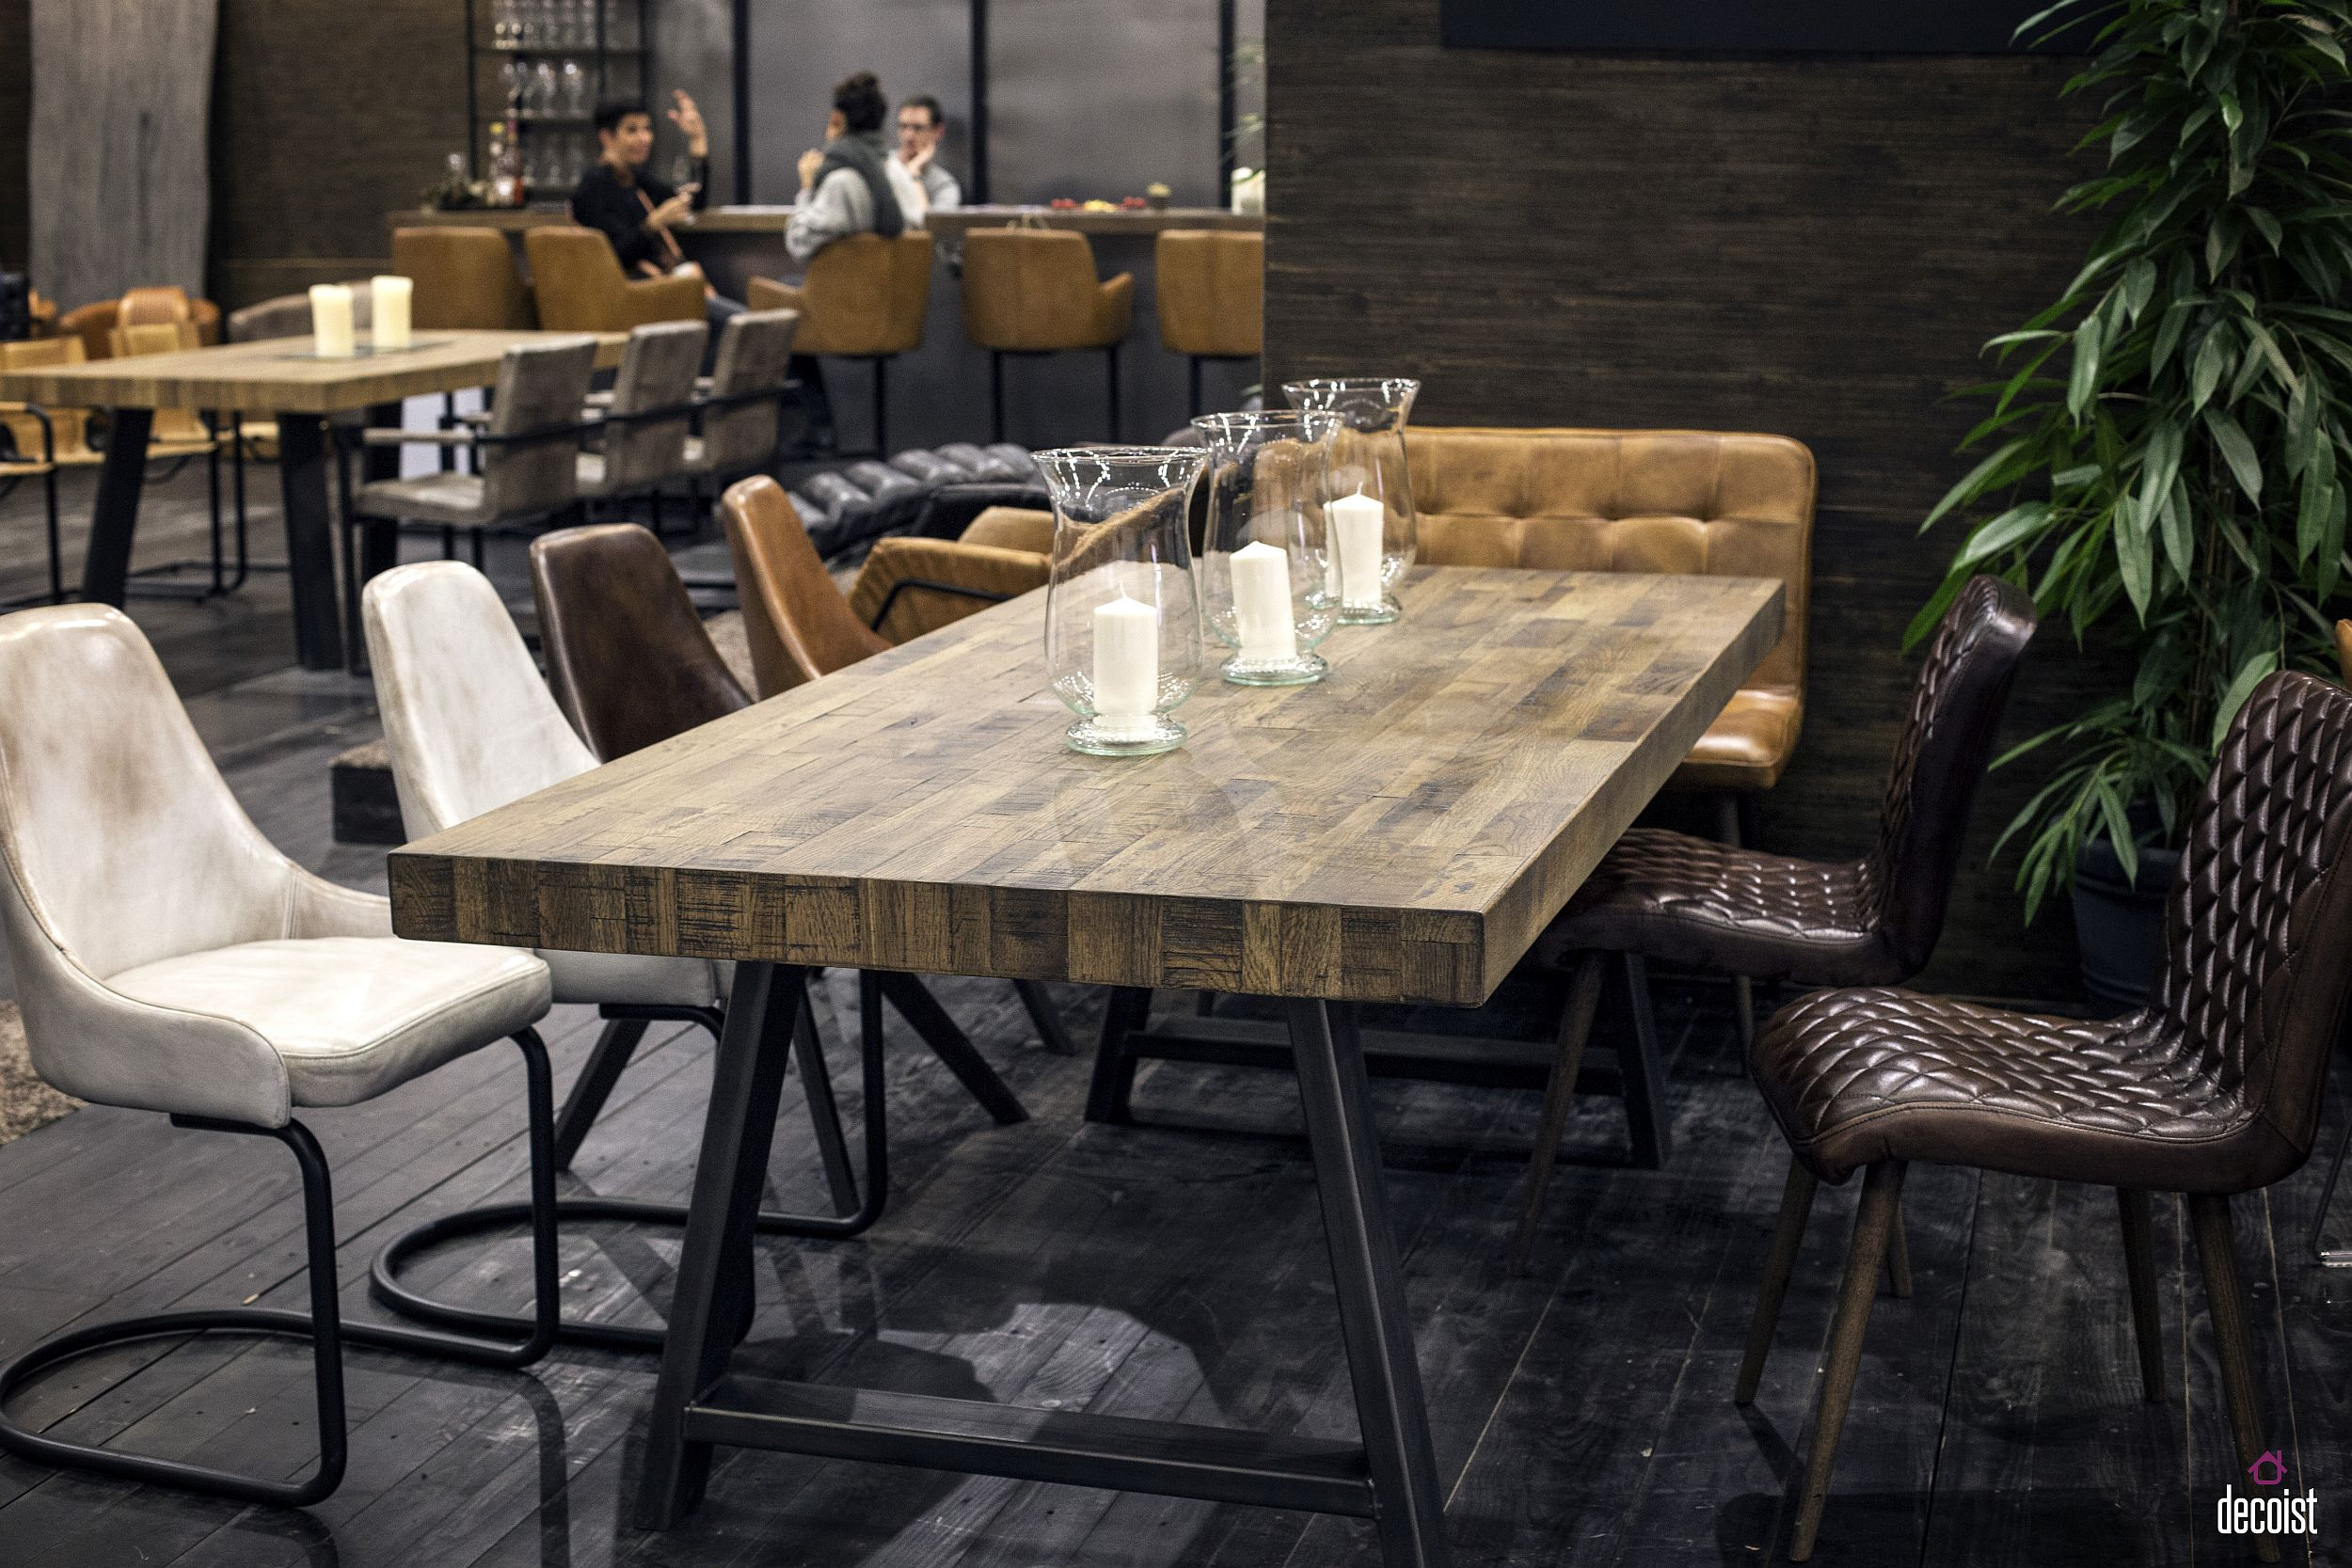 Unique-surface-of-the-wooden-dining-table-steals-the-show-here